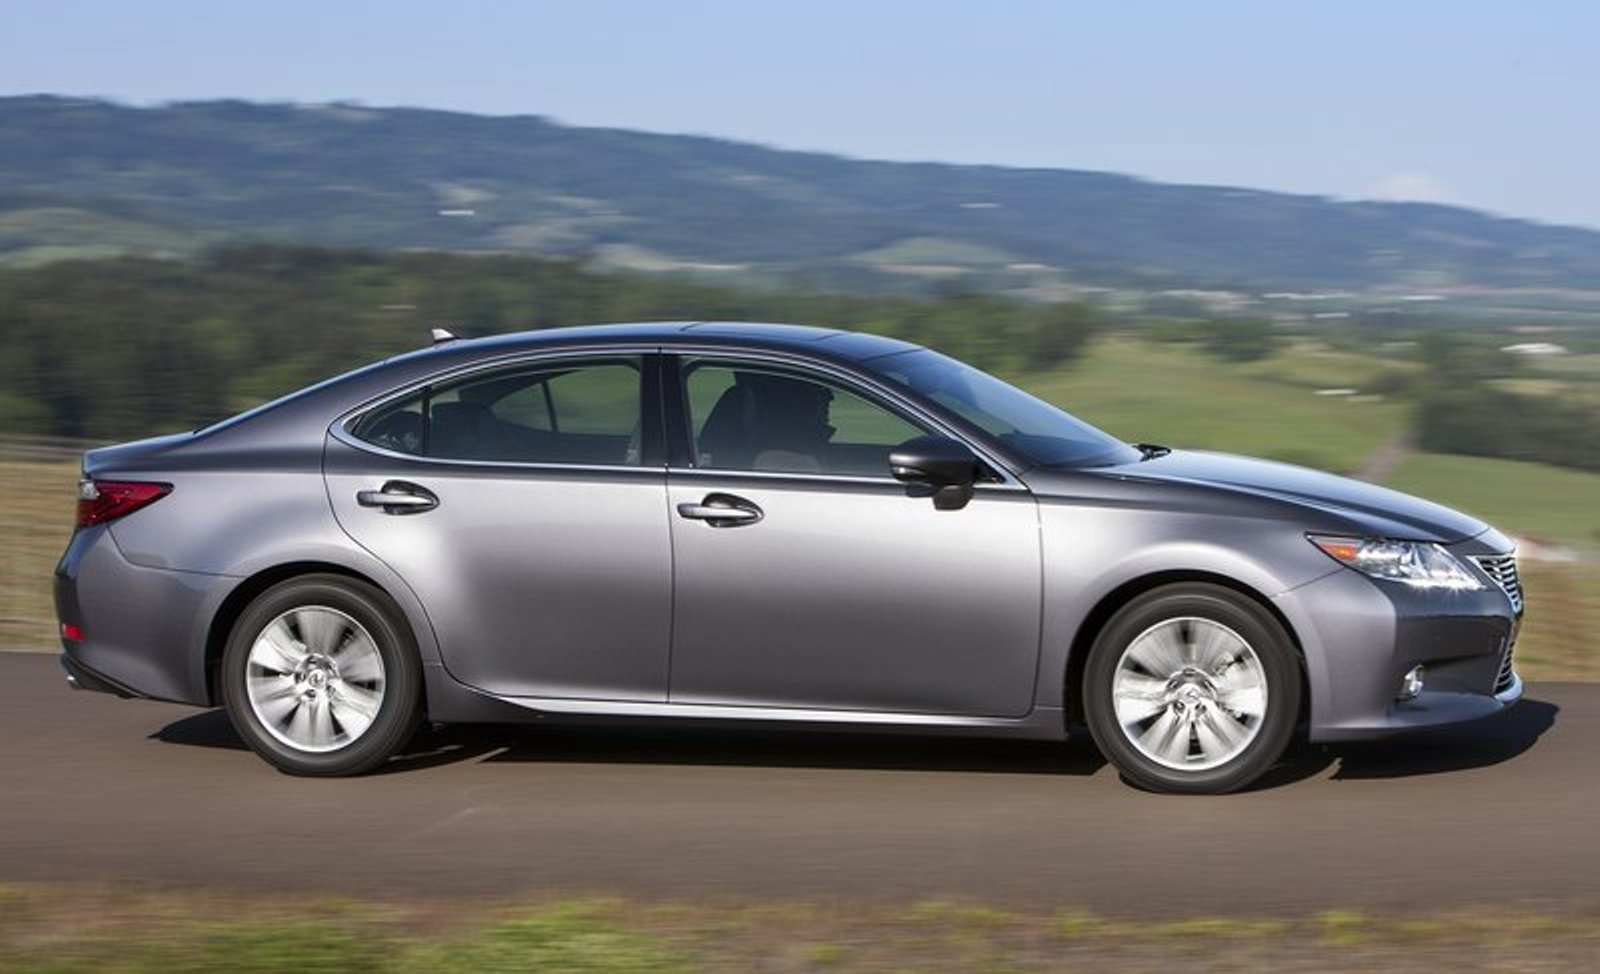 2013 Lexus ES350 Review and